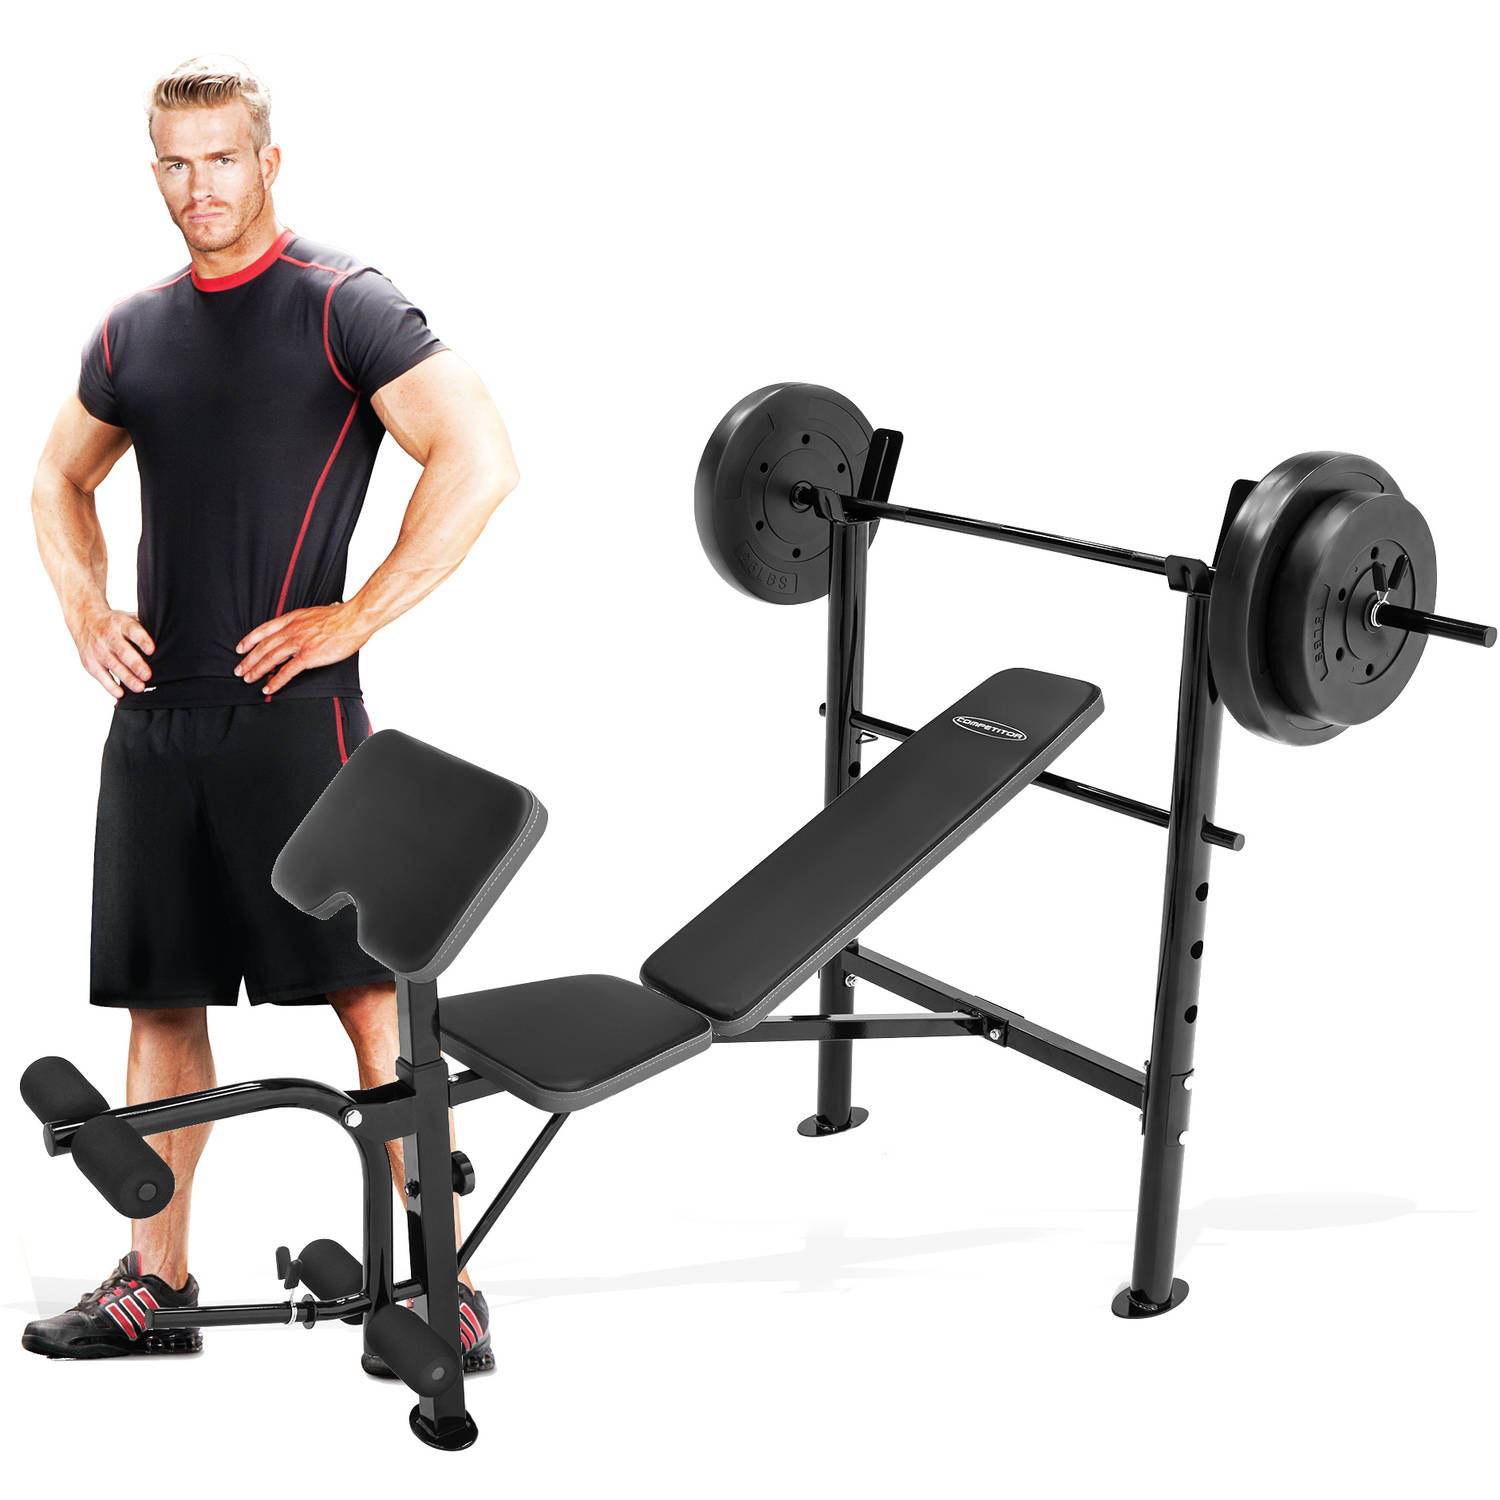 Marcy Competitor Combo Bench with 80 lbs Weight Set, CB-20110